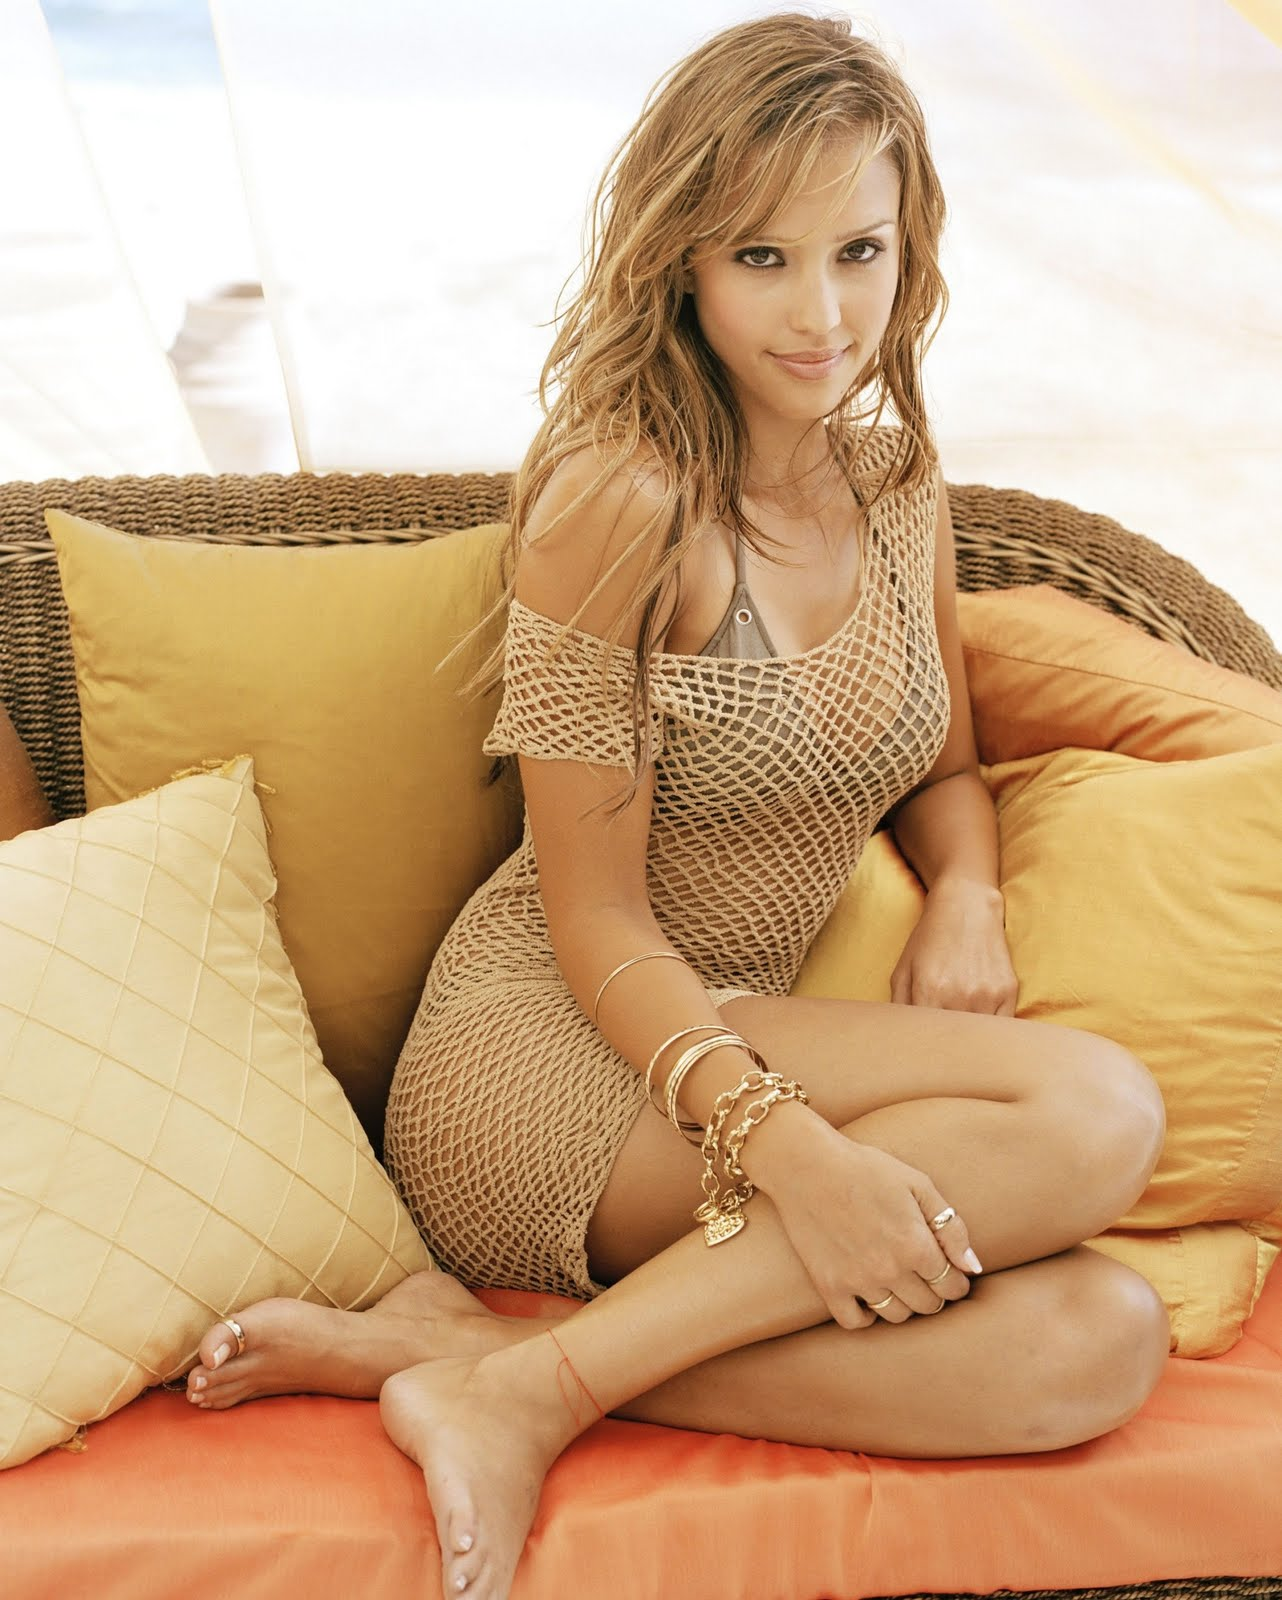 Jessica alba is a breathtakingly beautiful american actress known for